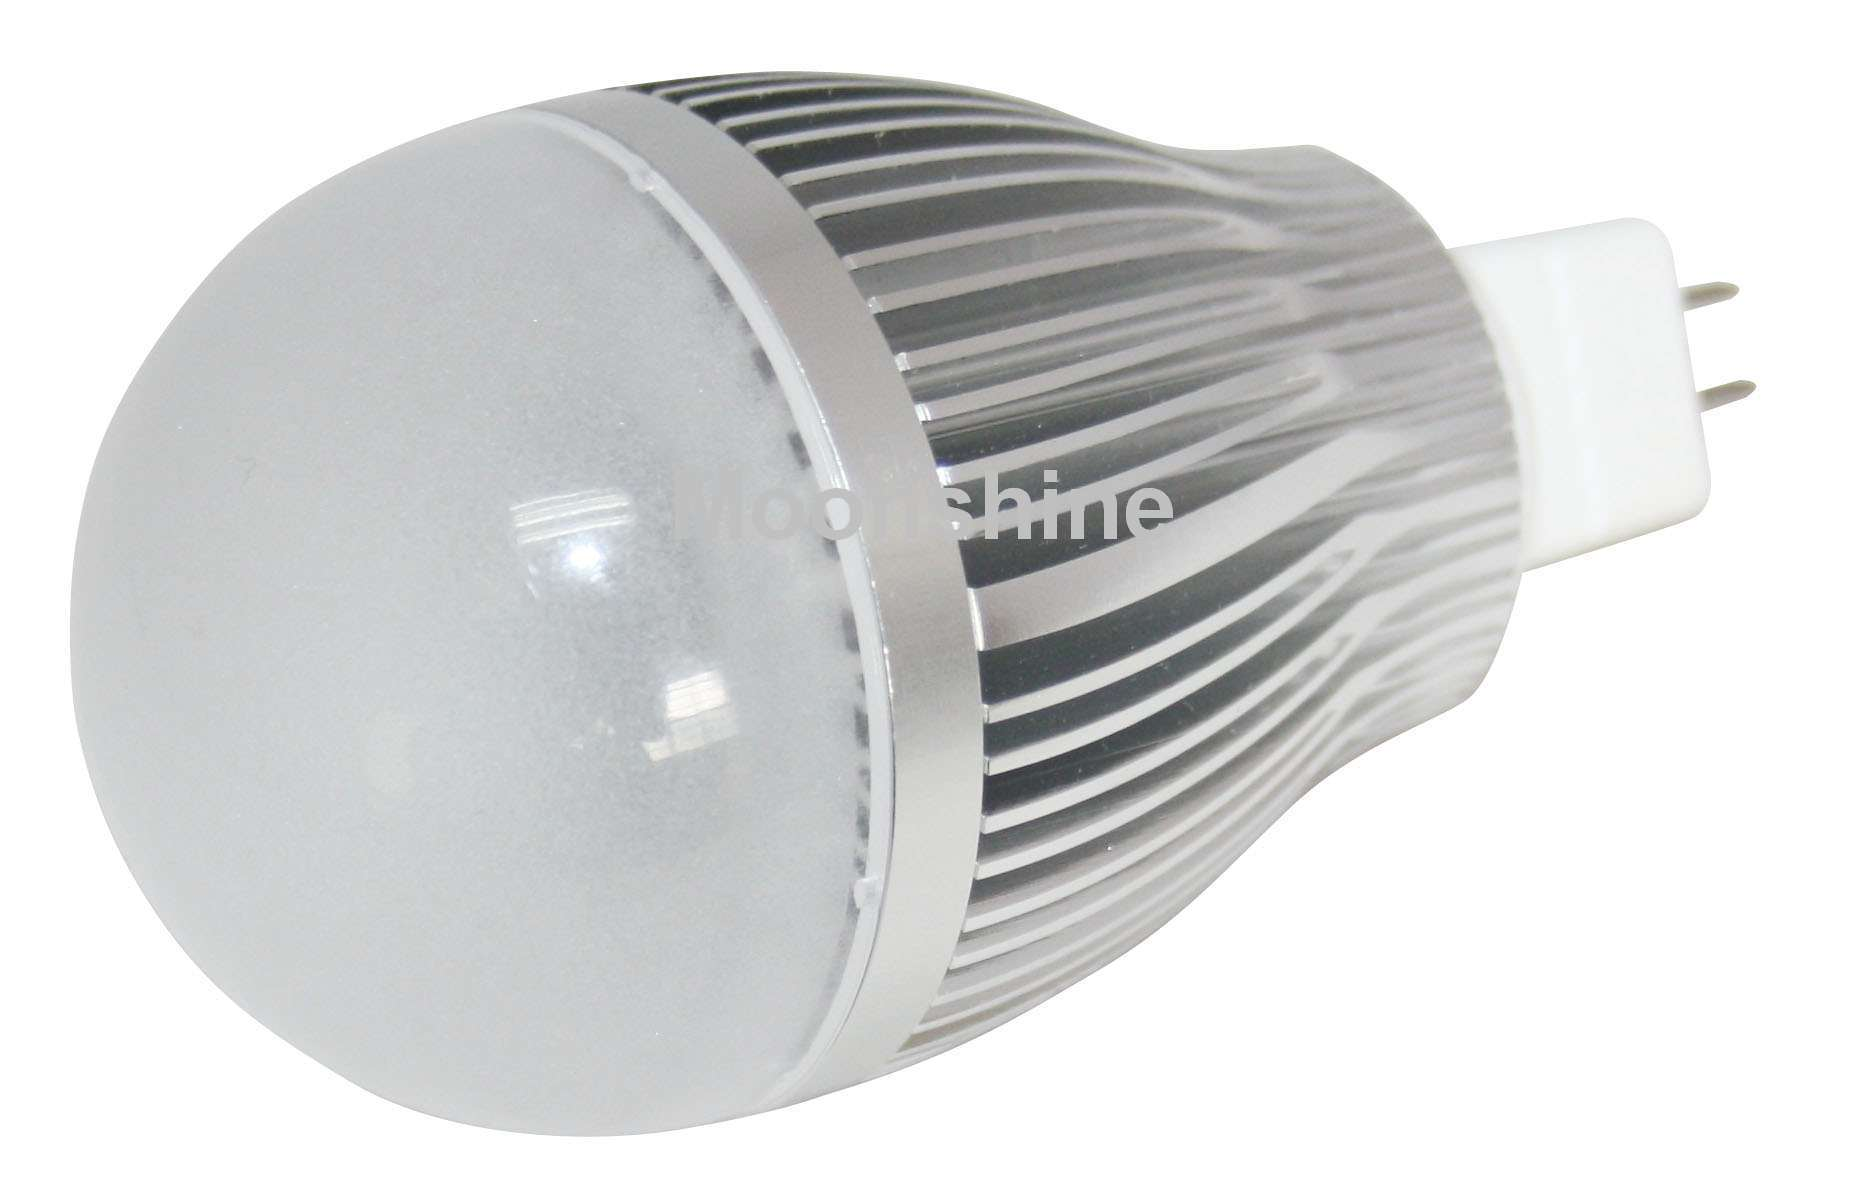 china 3w 12v ac dc led bulb light mr16 china 3w led bulb. Black Bedroom Furniture Sets. Home Design Ideas